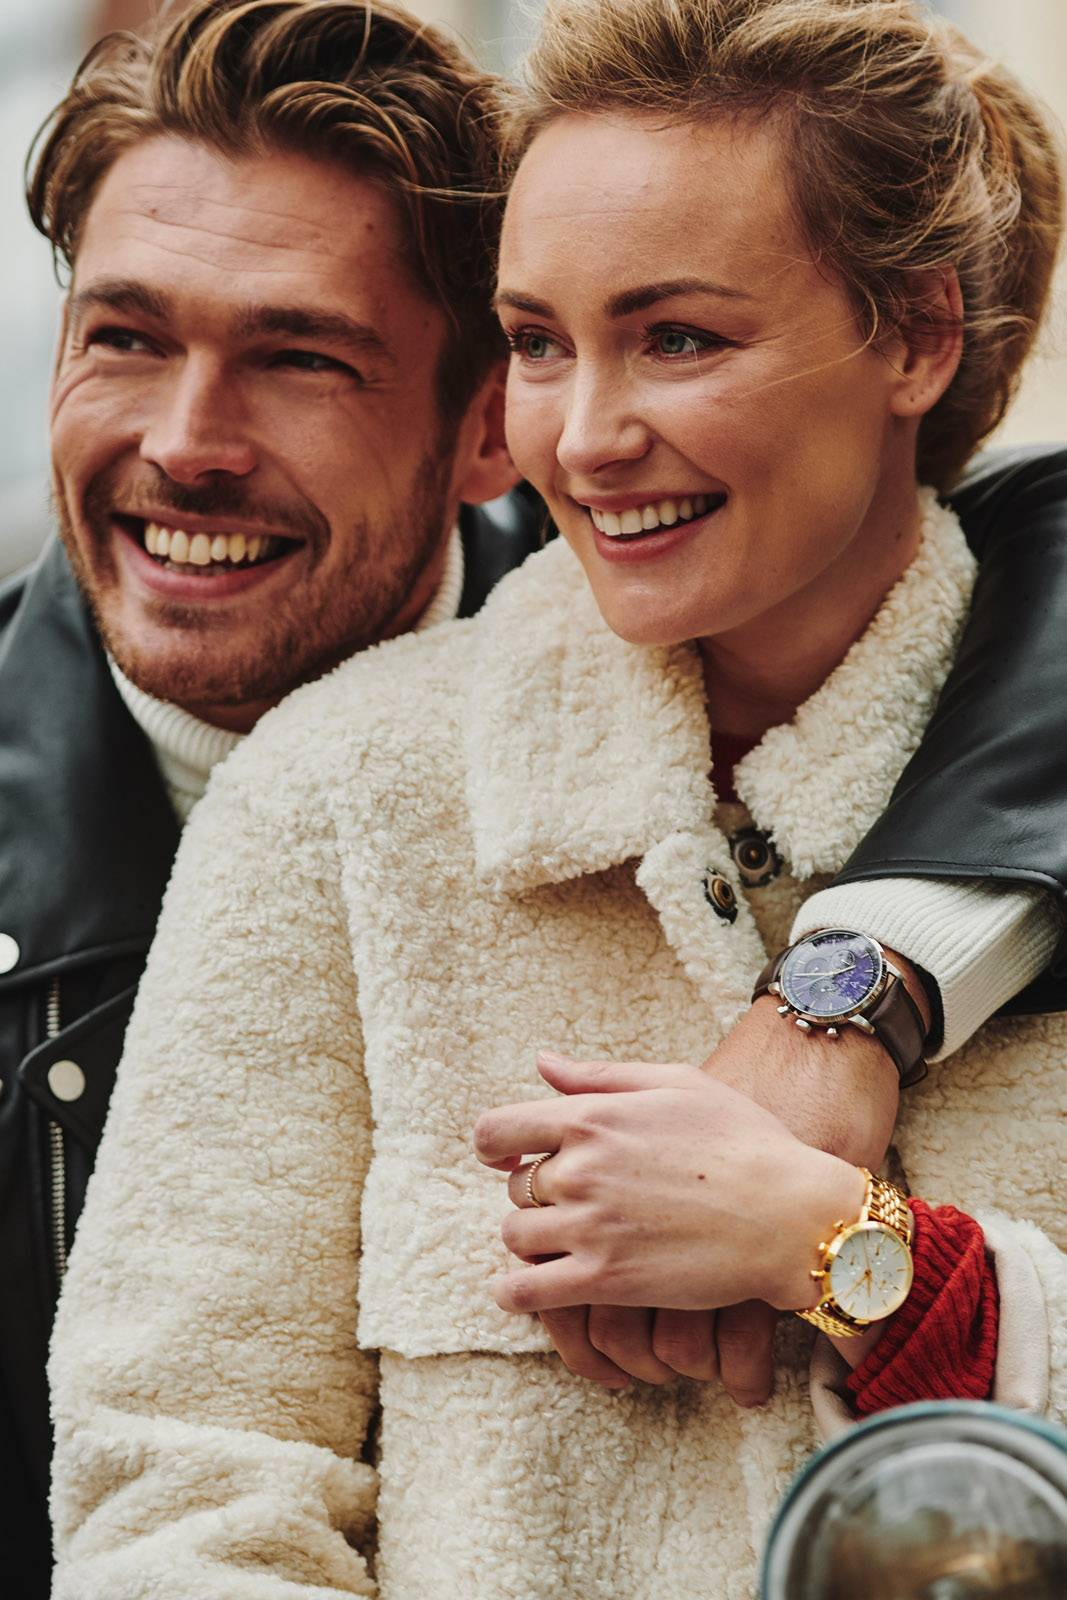 Watches and jewellery for him and her